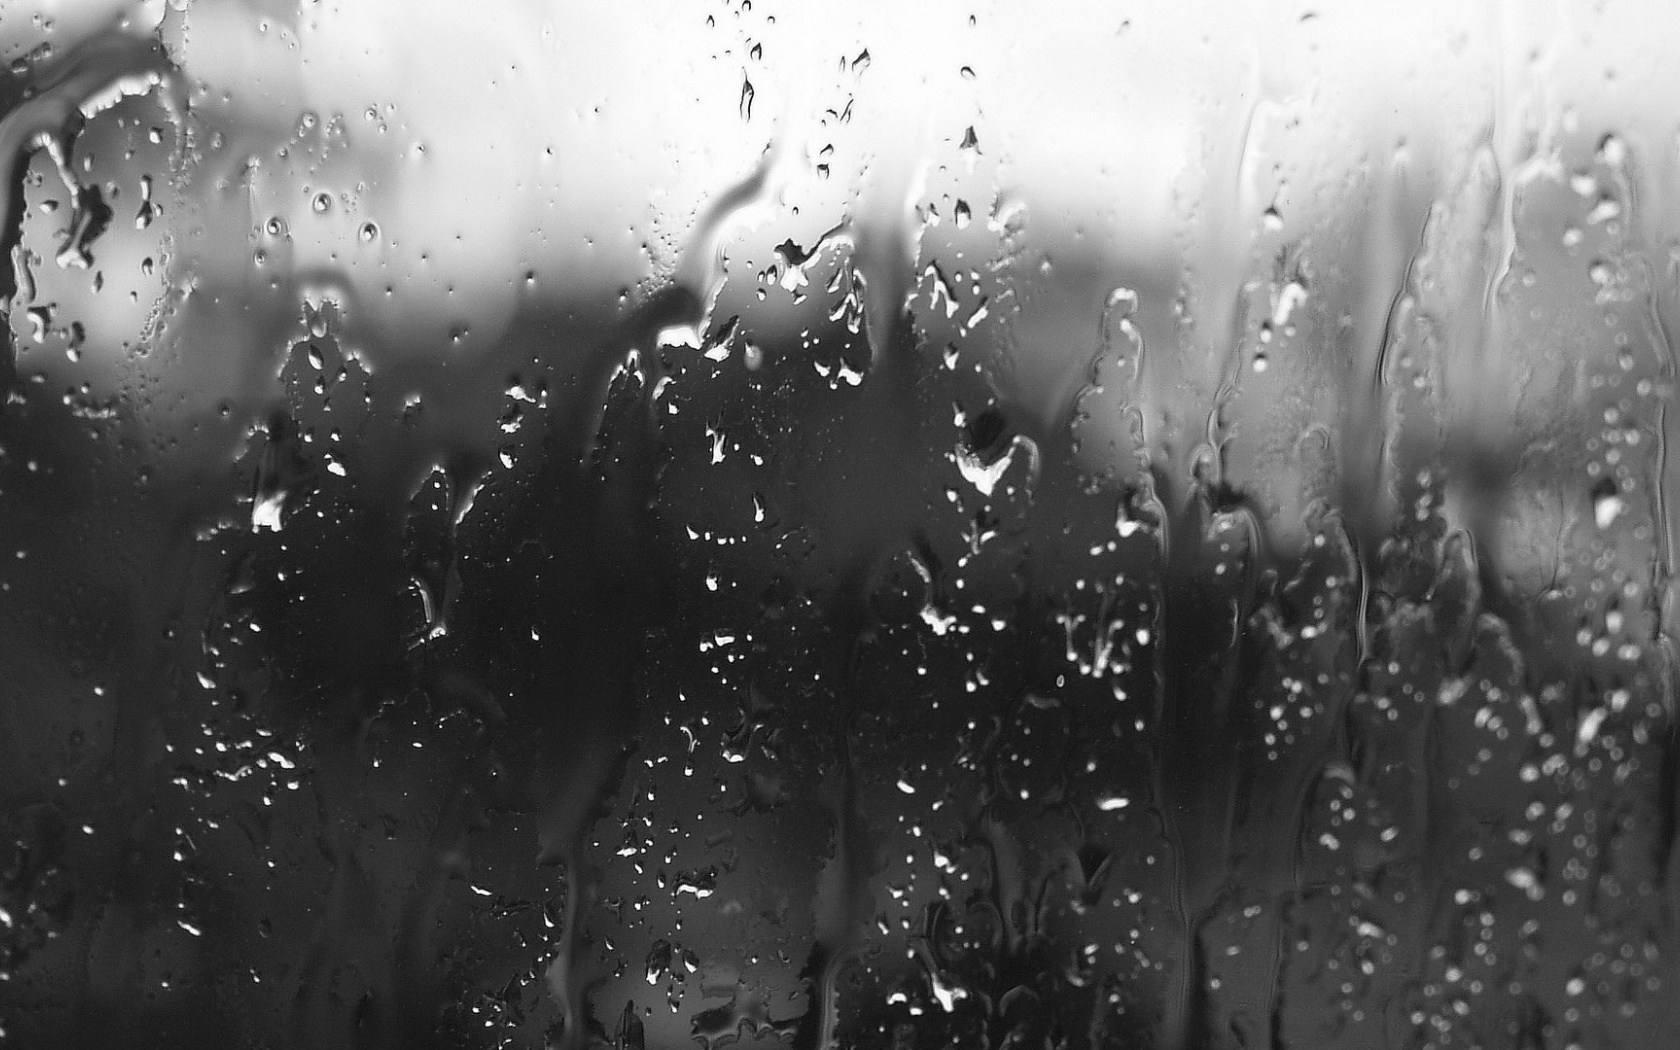 1500x500 Rain On Glass Twitter Header Photo